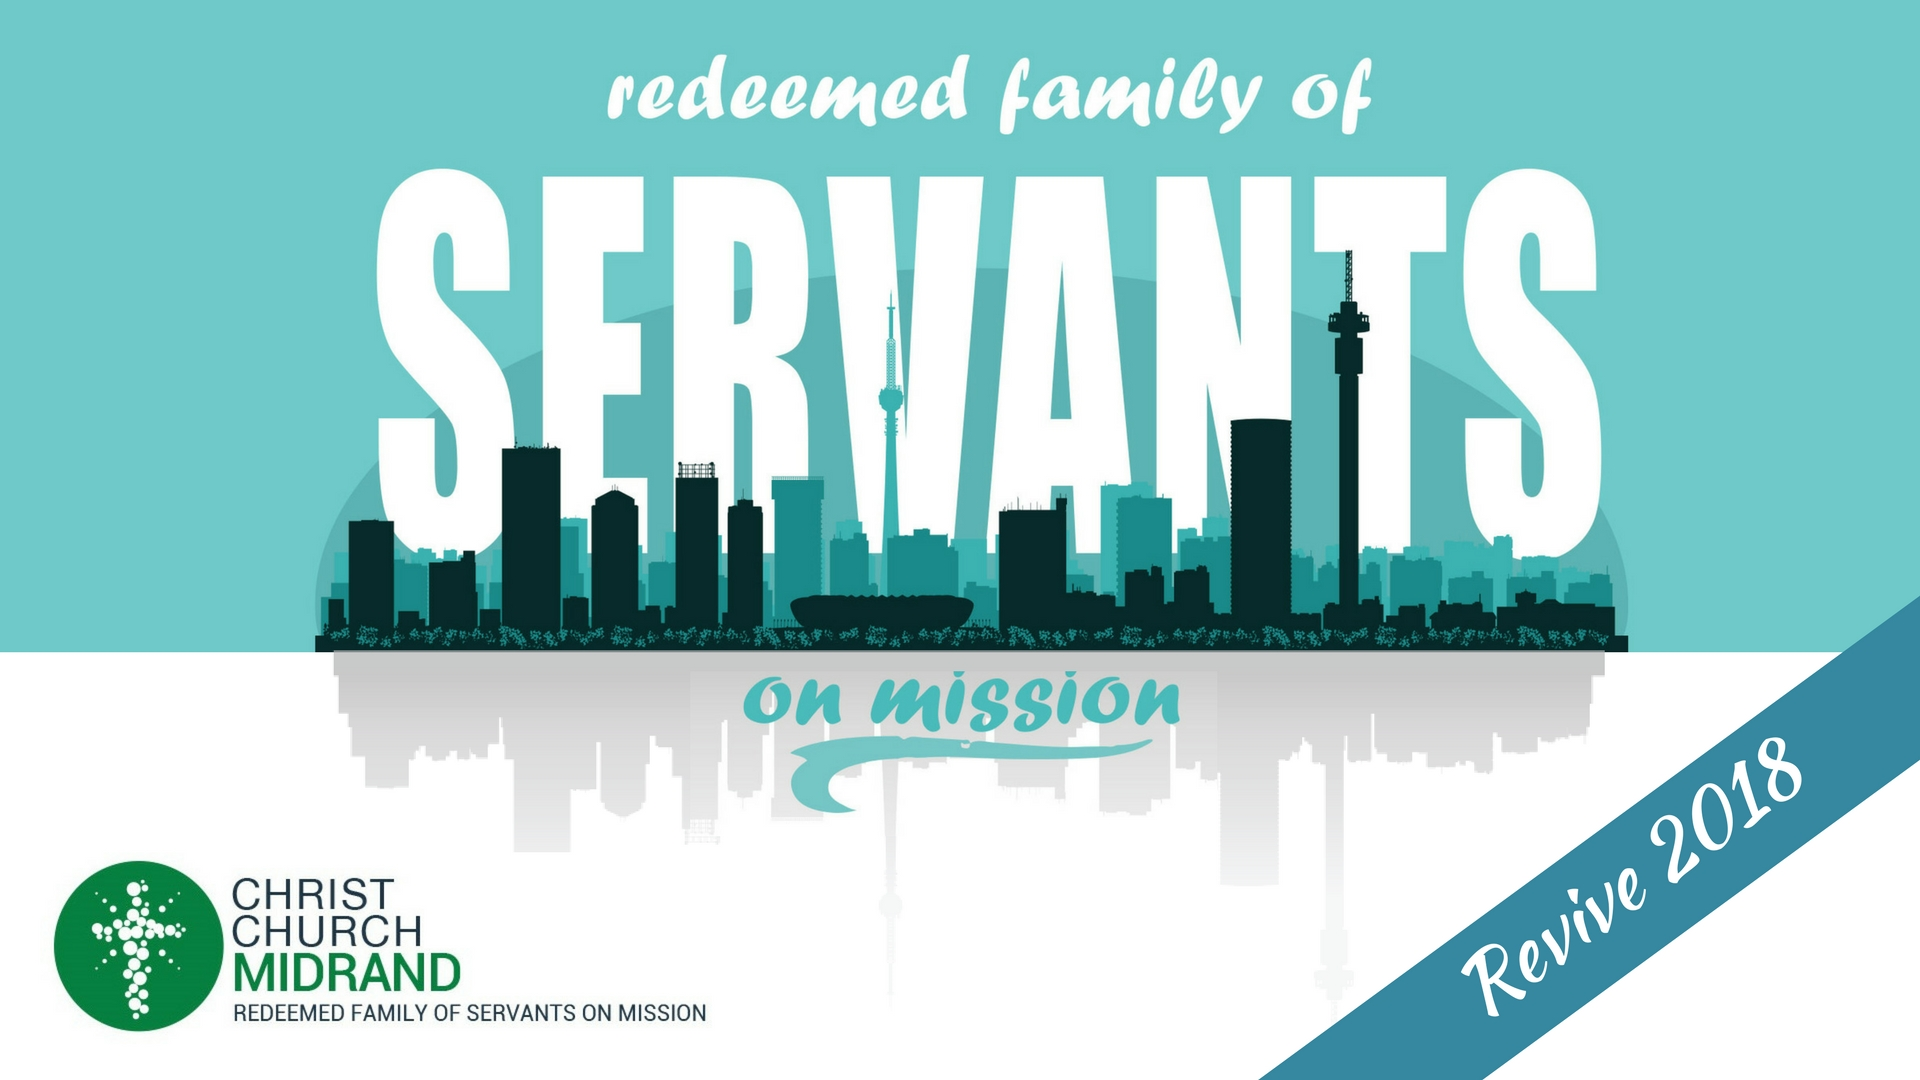 Revive 2018 - Redeemed Family of Servants On Mission - Main Website image Final